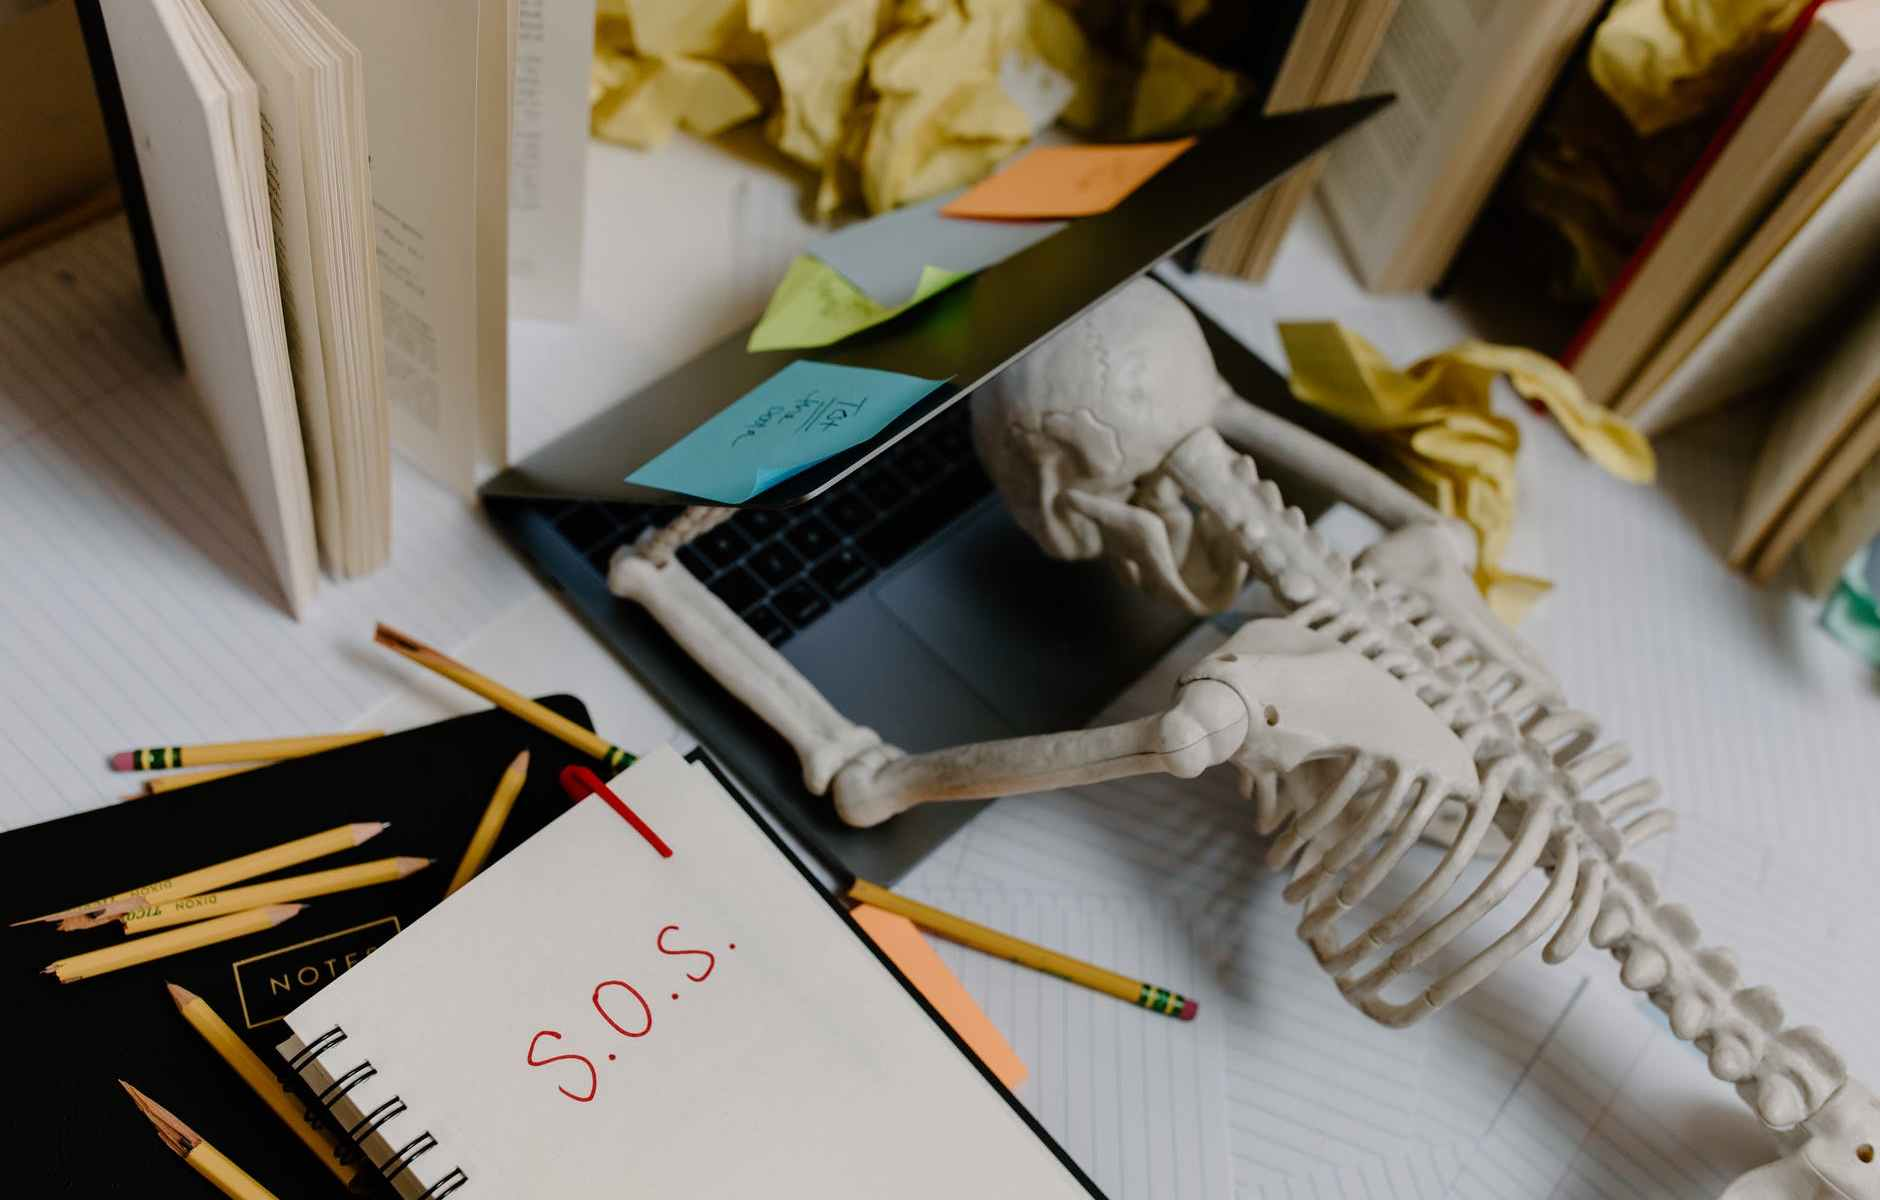 skeleton with head on a laptop with sticky notes and a notebook that says S O S in red ink.